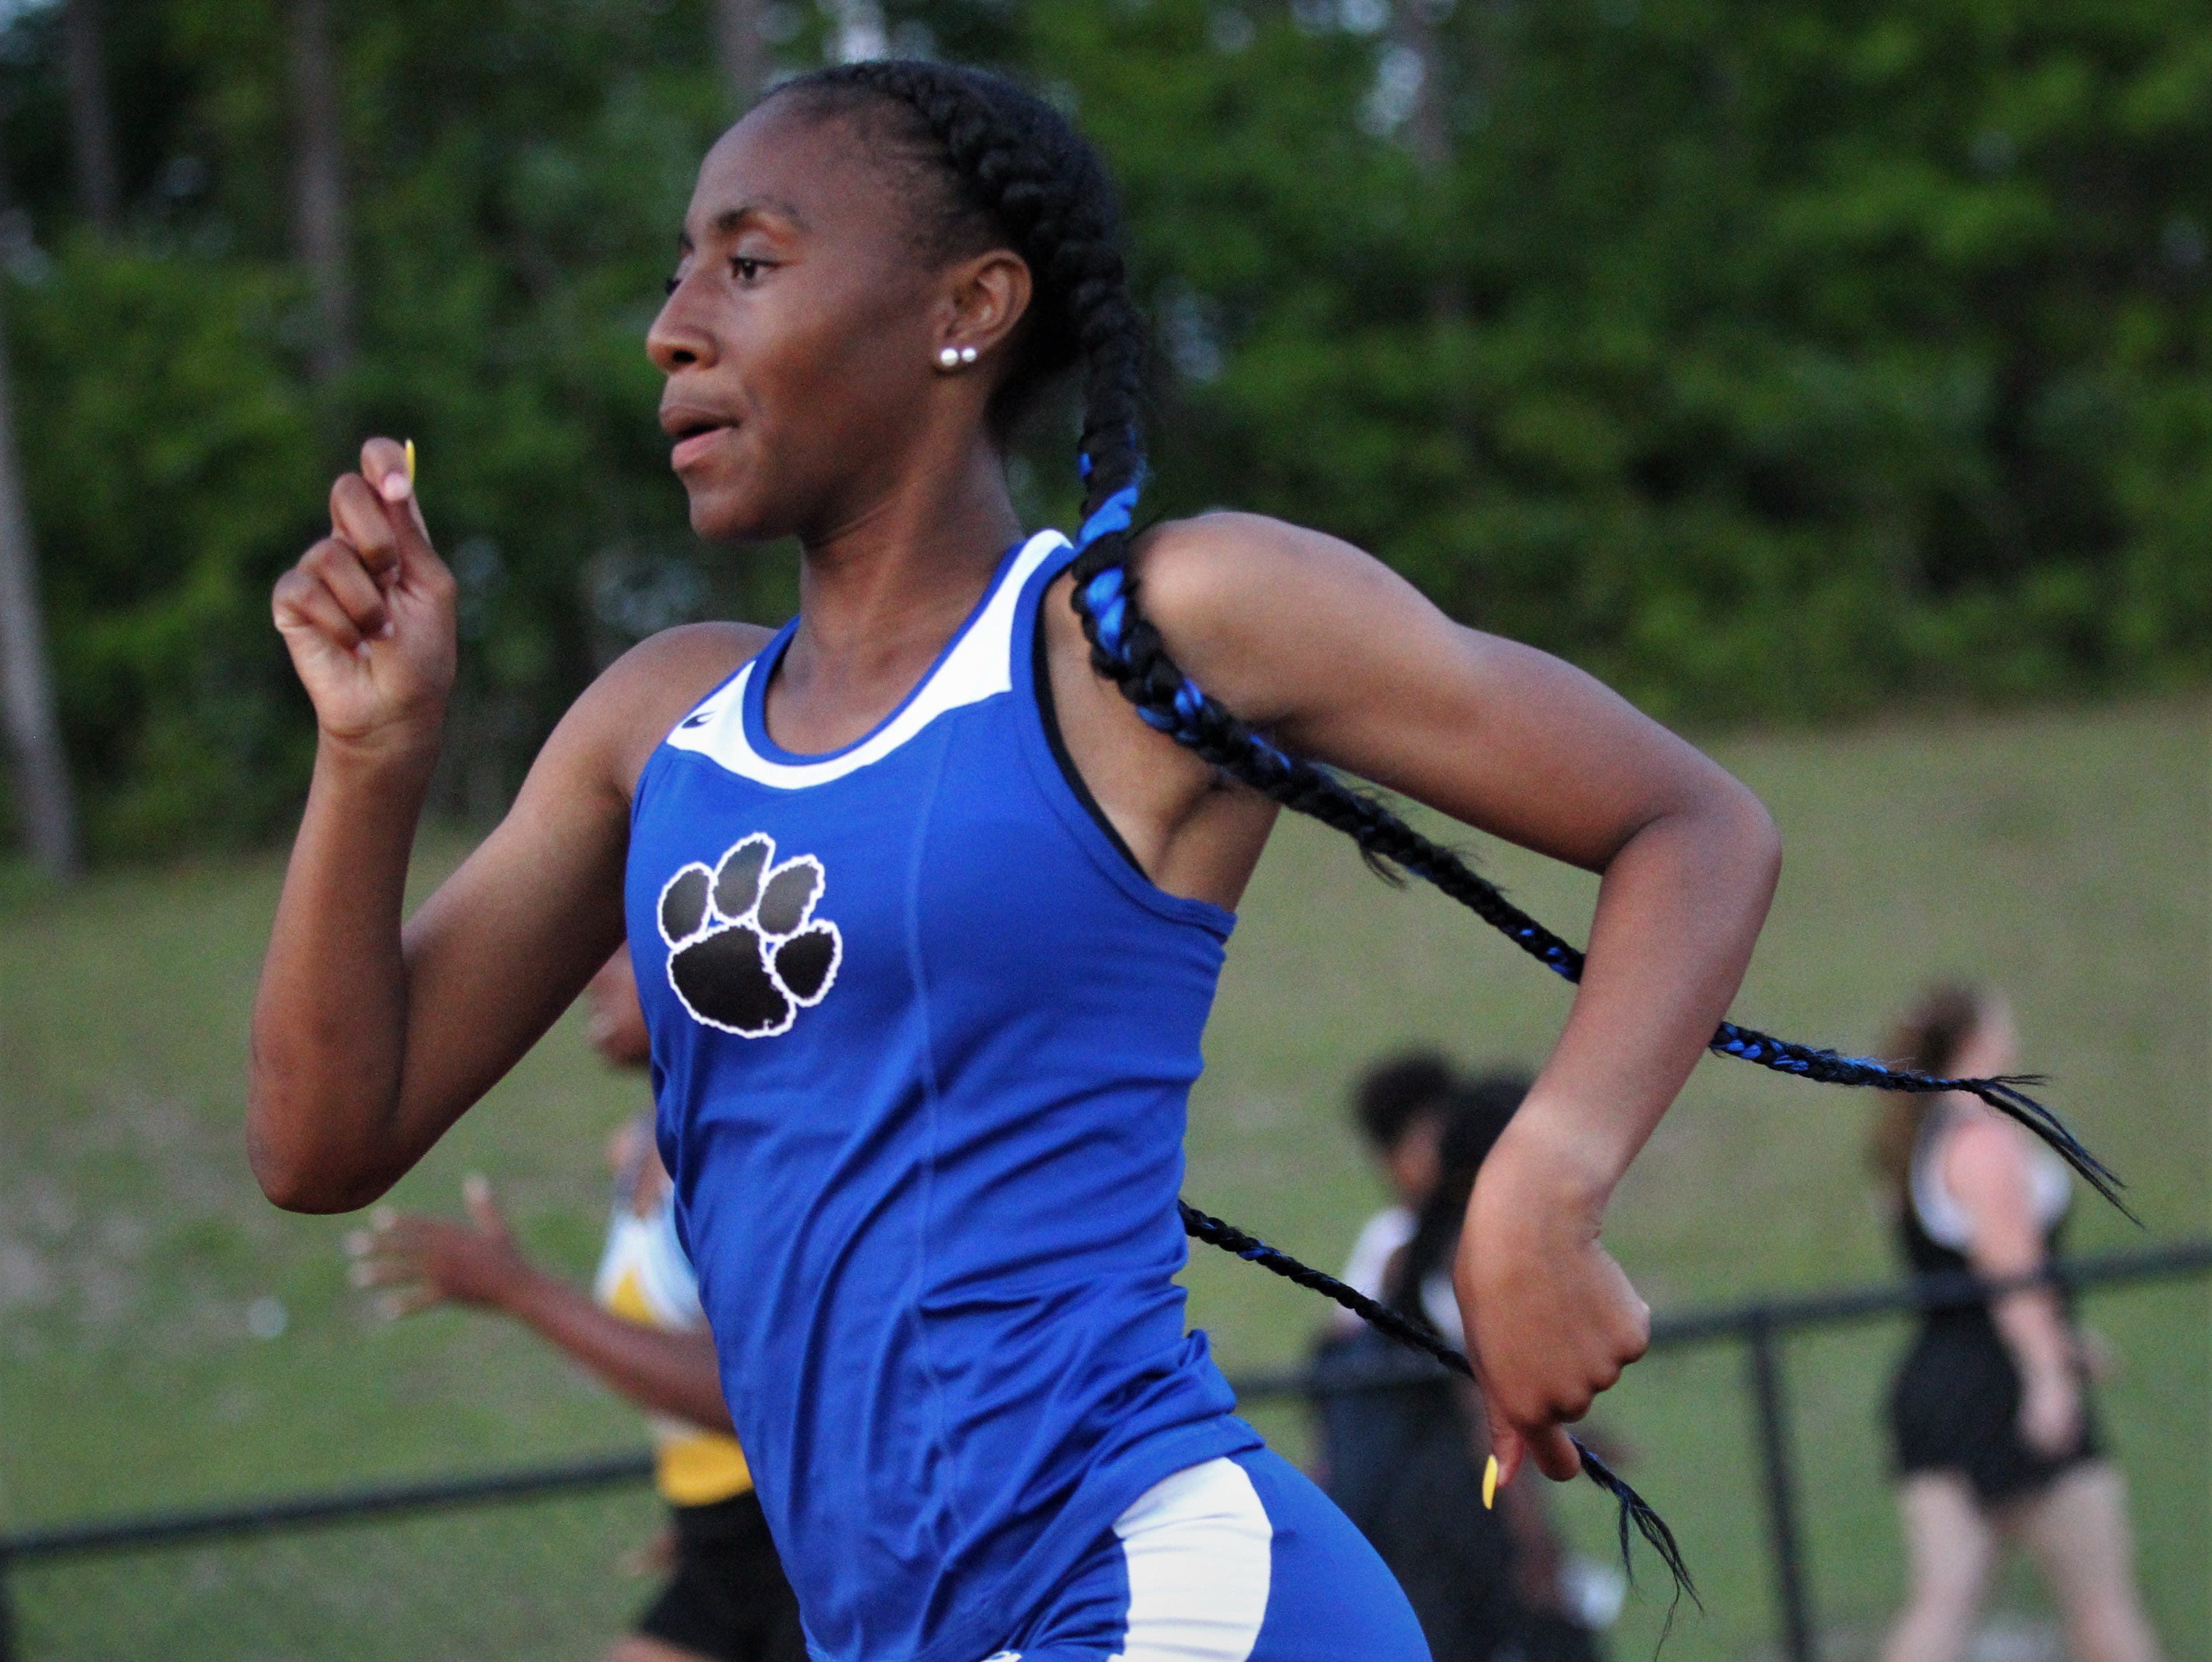 Godby junior A'Kyrah O'Banner races during the District 3-1A and 2-2A track and field meets at Florida High on Saturday, April 13, 2019.